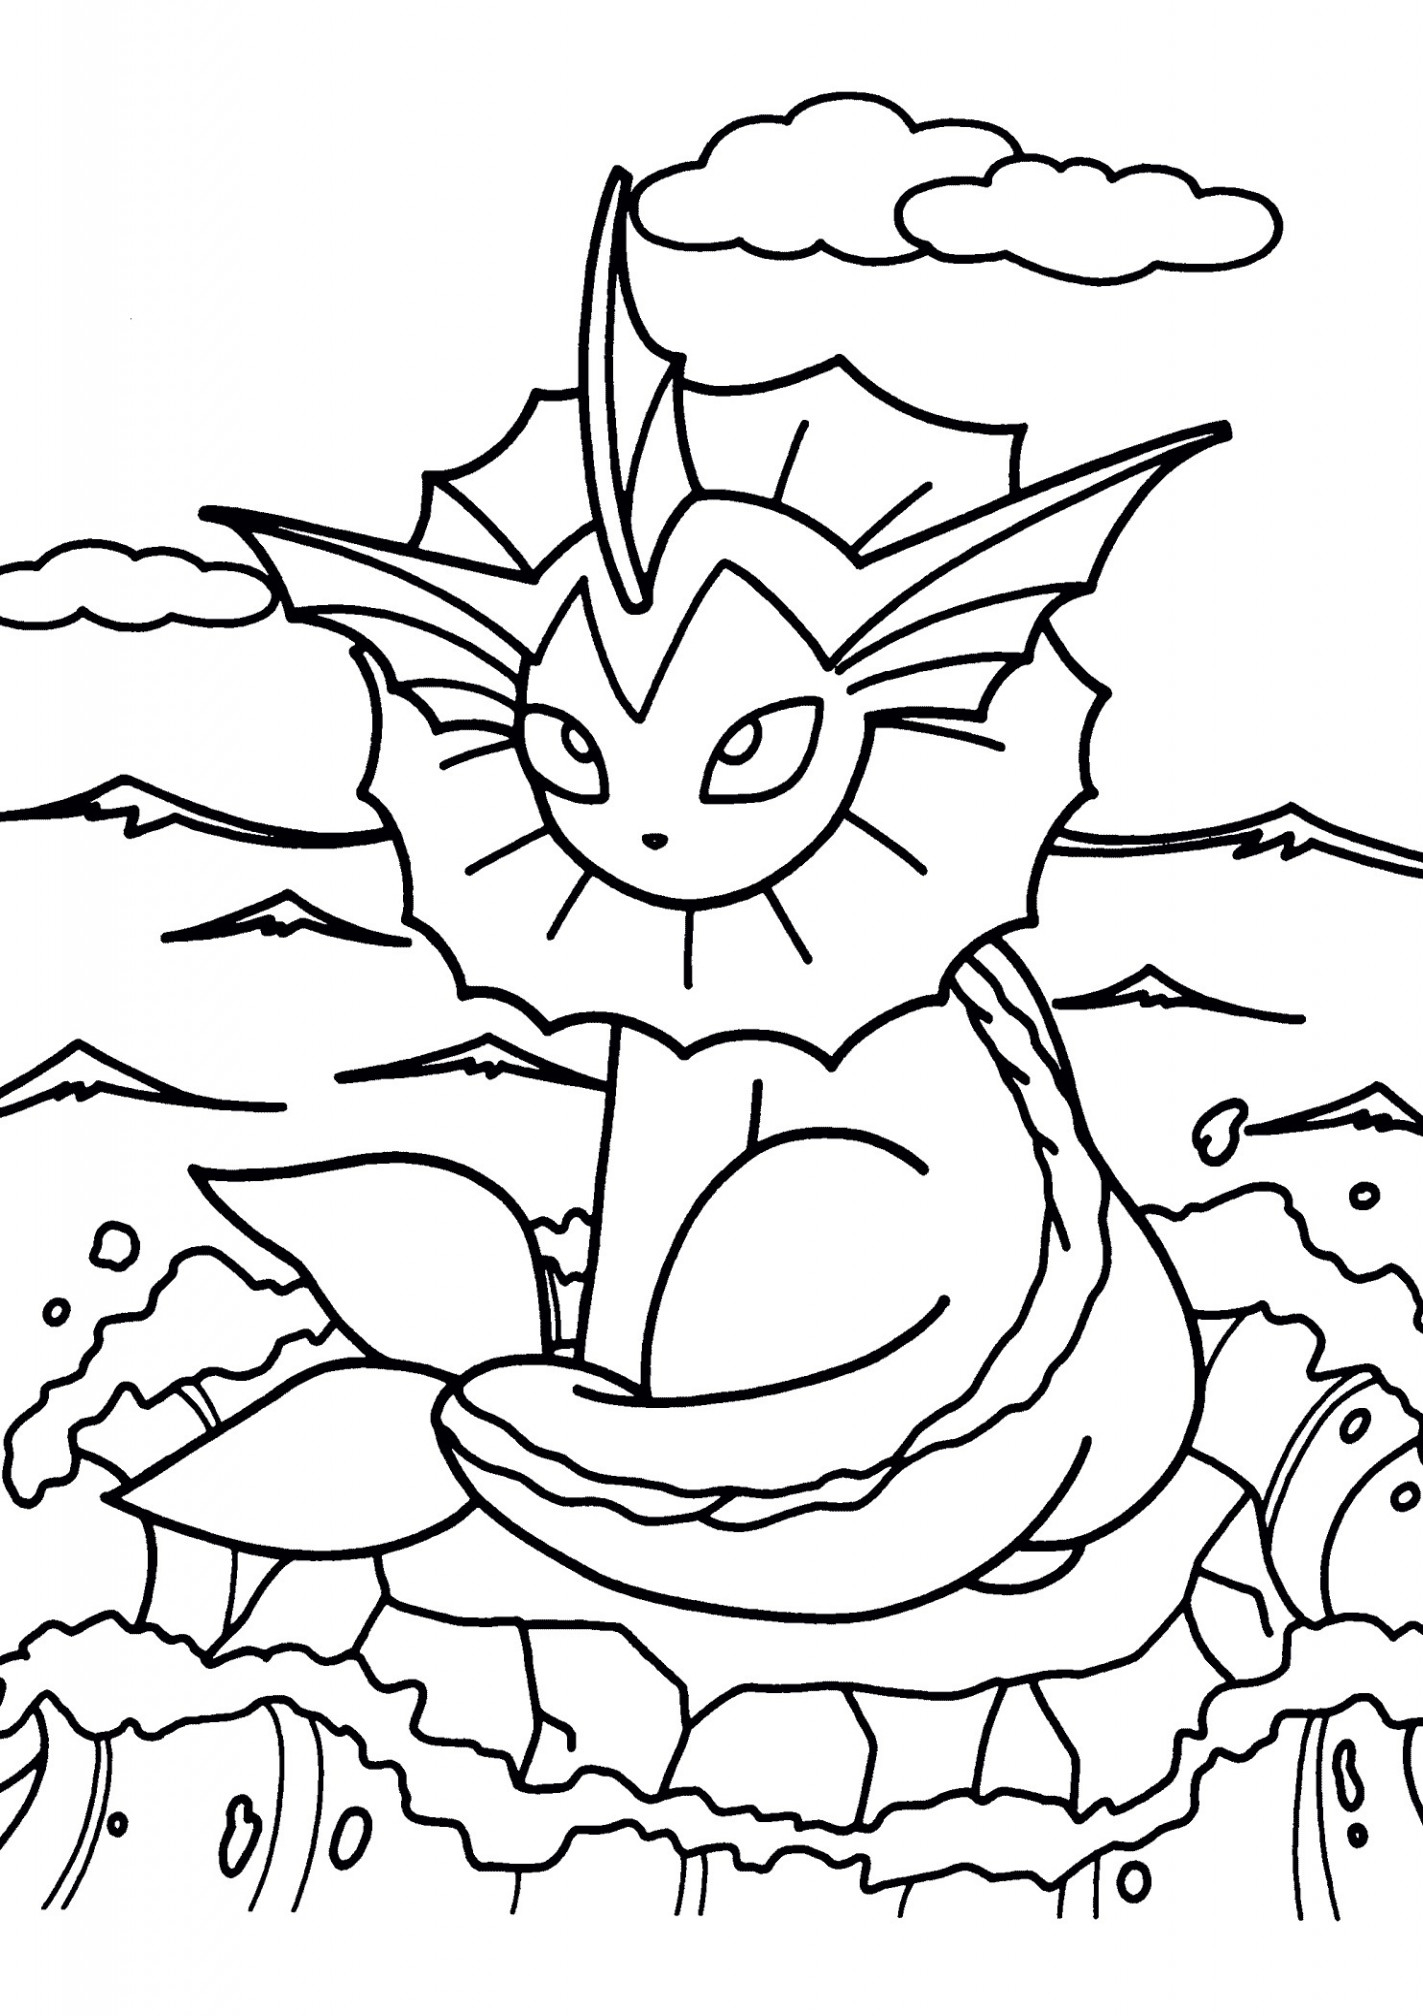 Free Printable Pokemon Coloring Pages Free Childrens Printable Coloring Pages Free Printable Disney